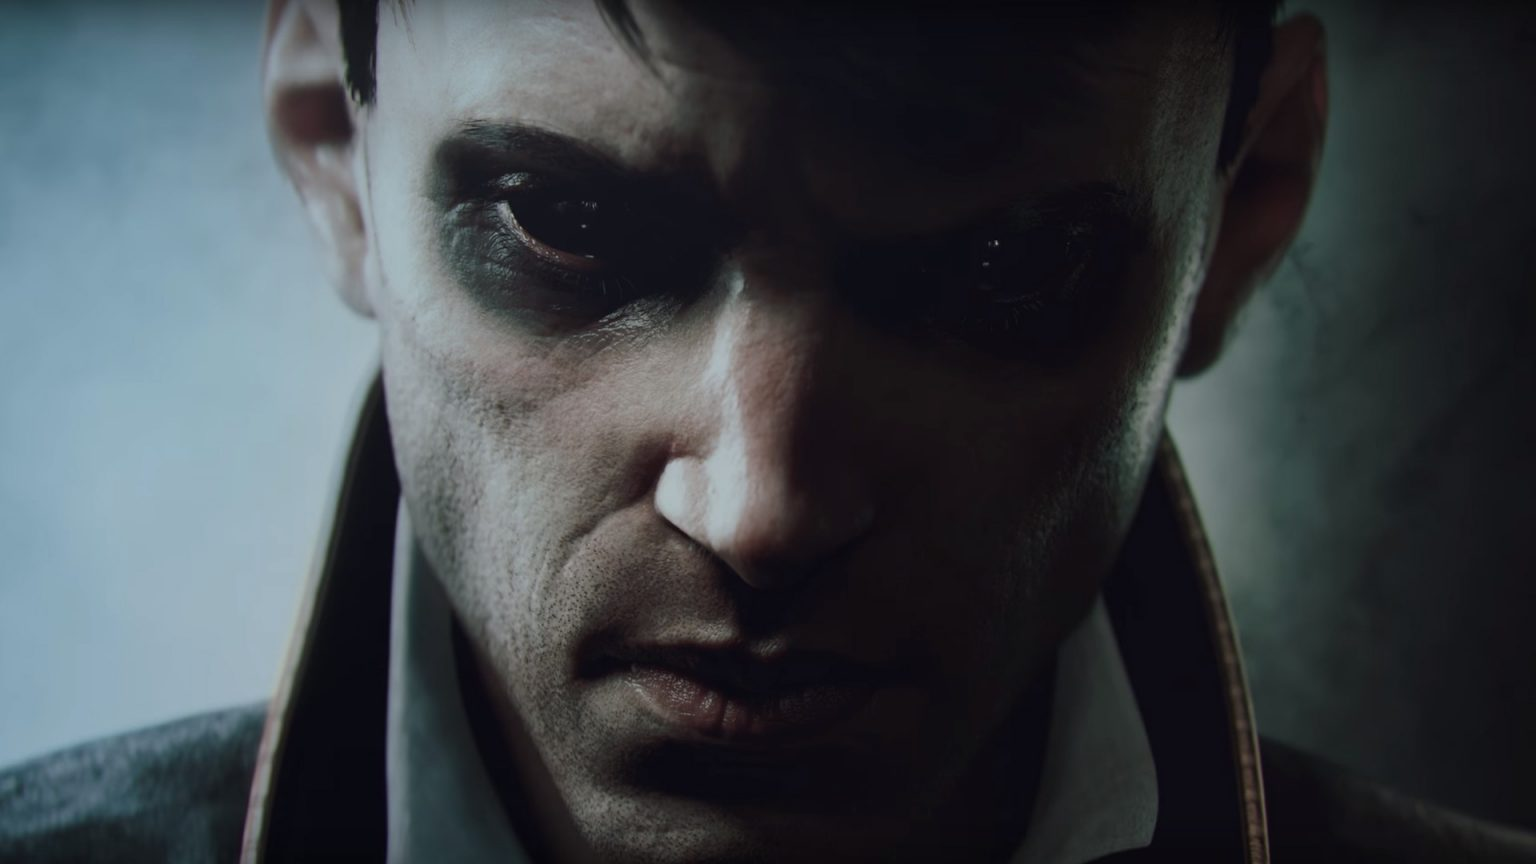 Part 2: Dishonored: Death of the Outsider: An Interview with Harvey Smith